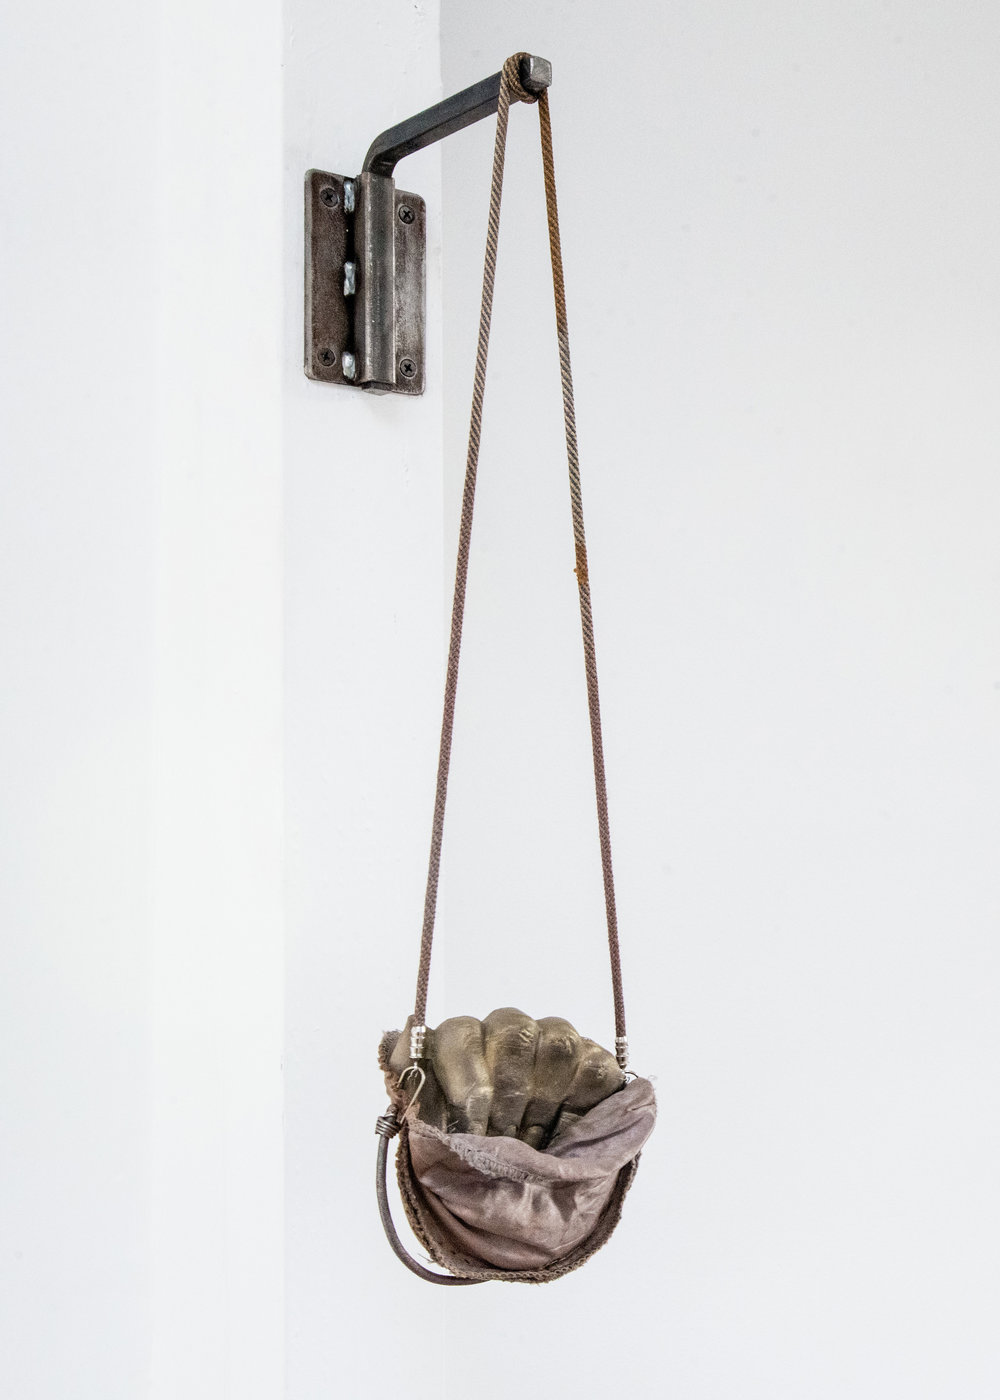 Jenine Marsh,  fist in pocket , 2018. Rust-stained shoulder-pads, necklace cord, bungee cord, staples, wire, powdered pigment, gypsum cement, steel hardware.